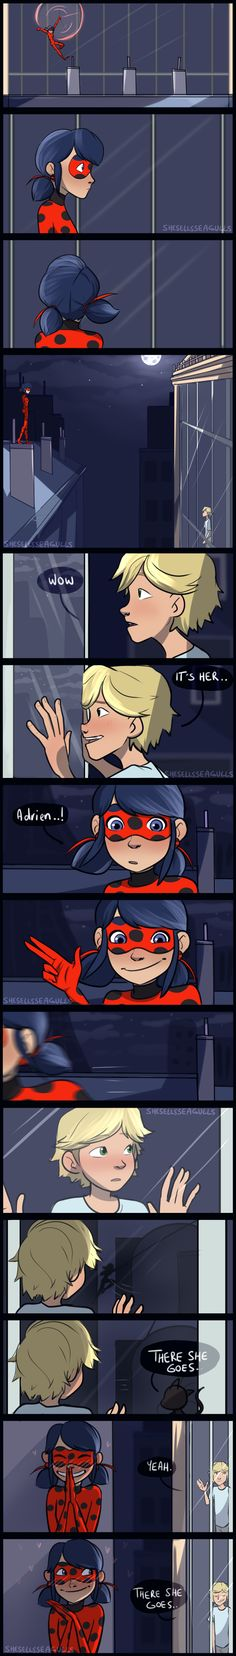 thereshegoes (ladybug comic) by she-sells-seagulls on DeviantArt